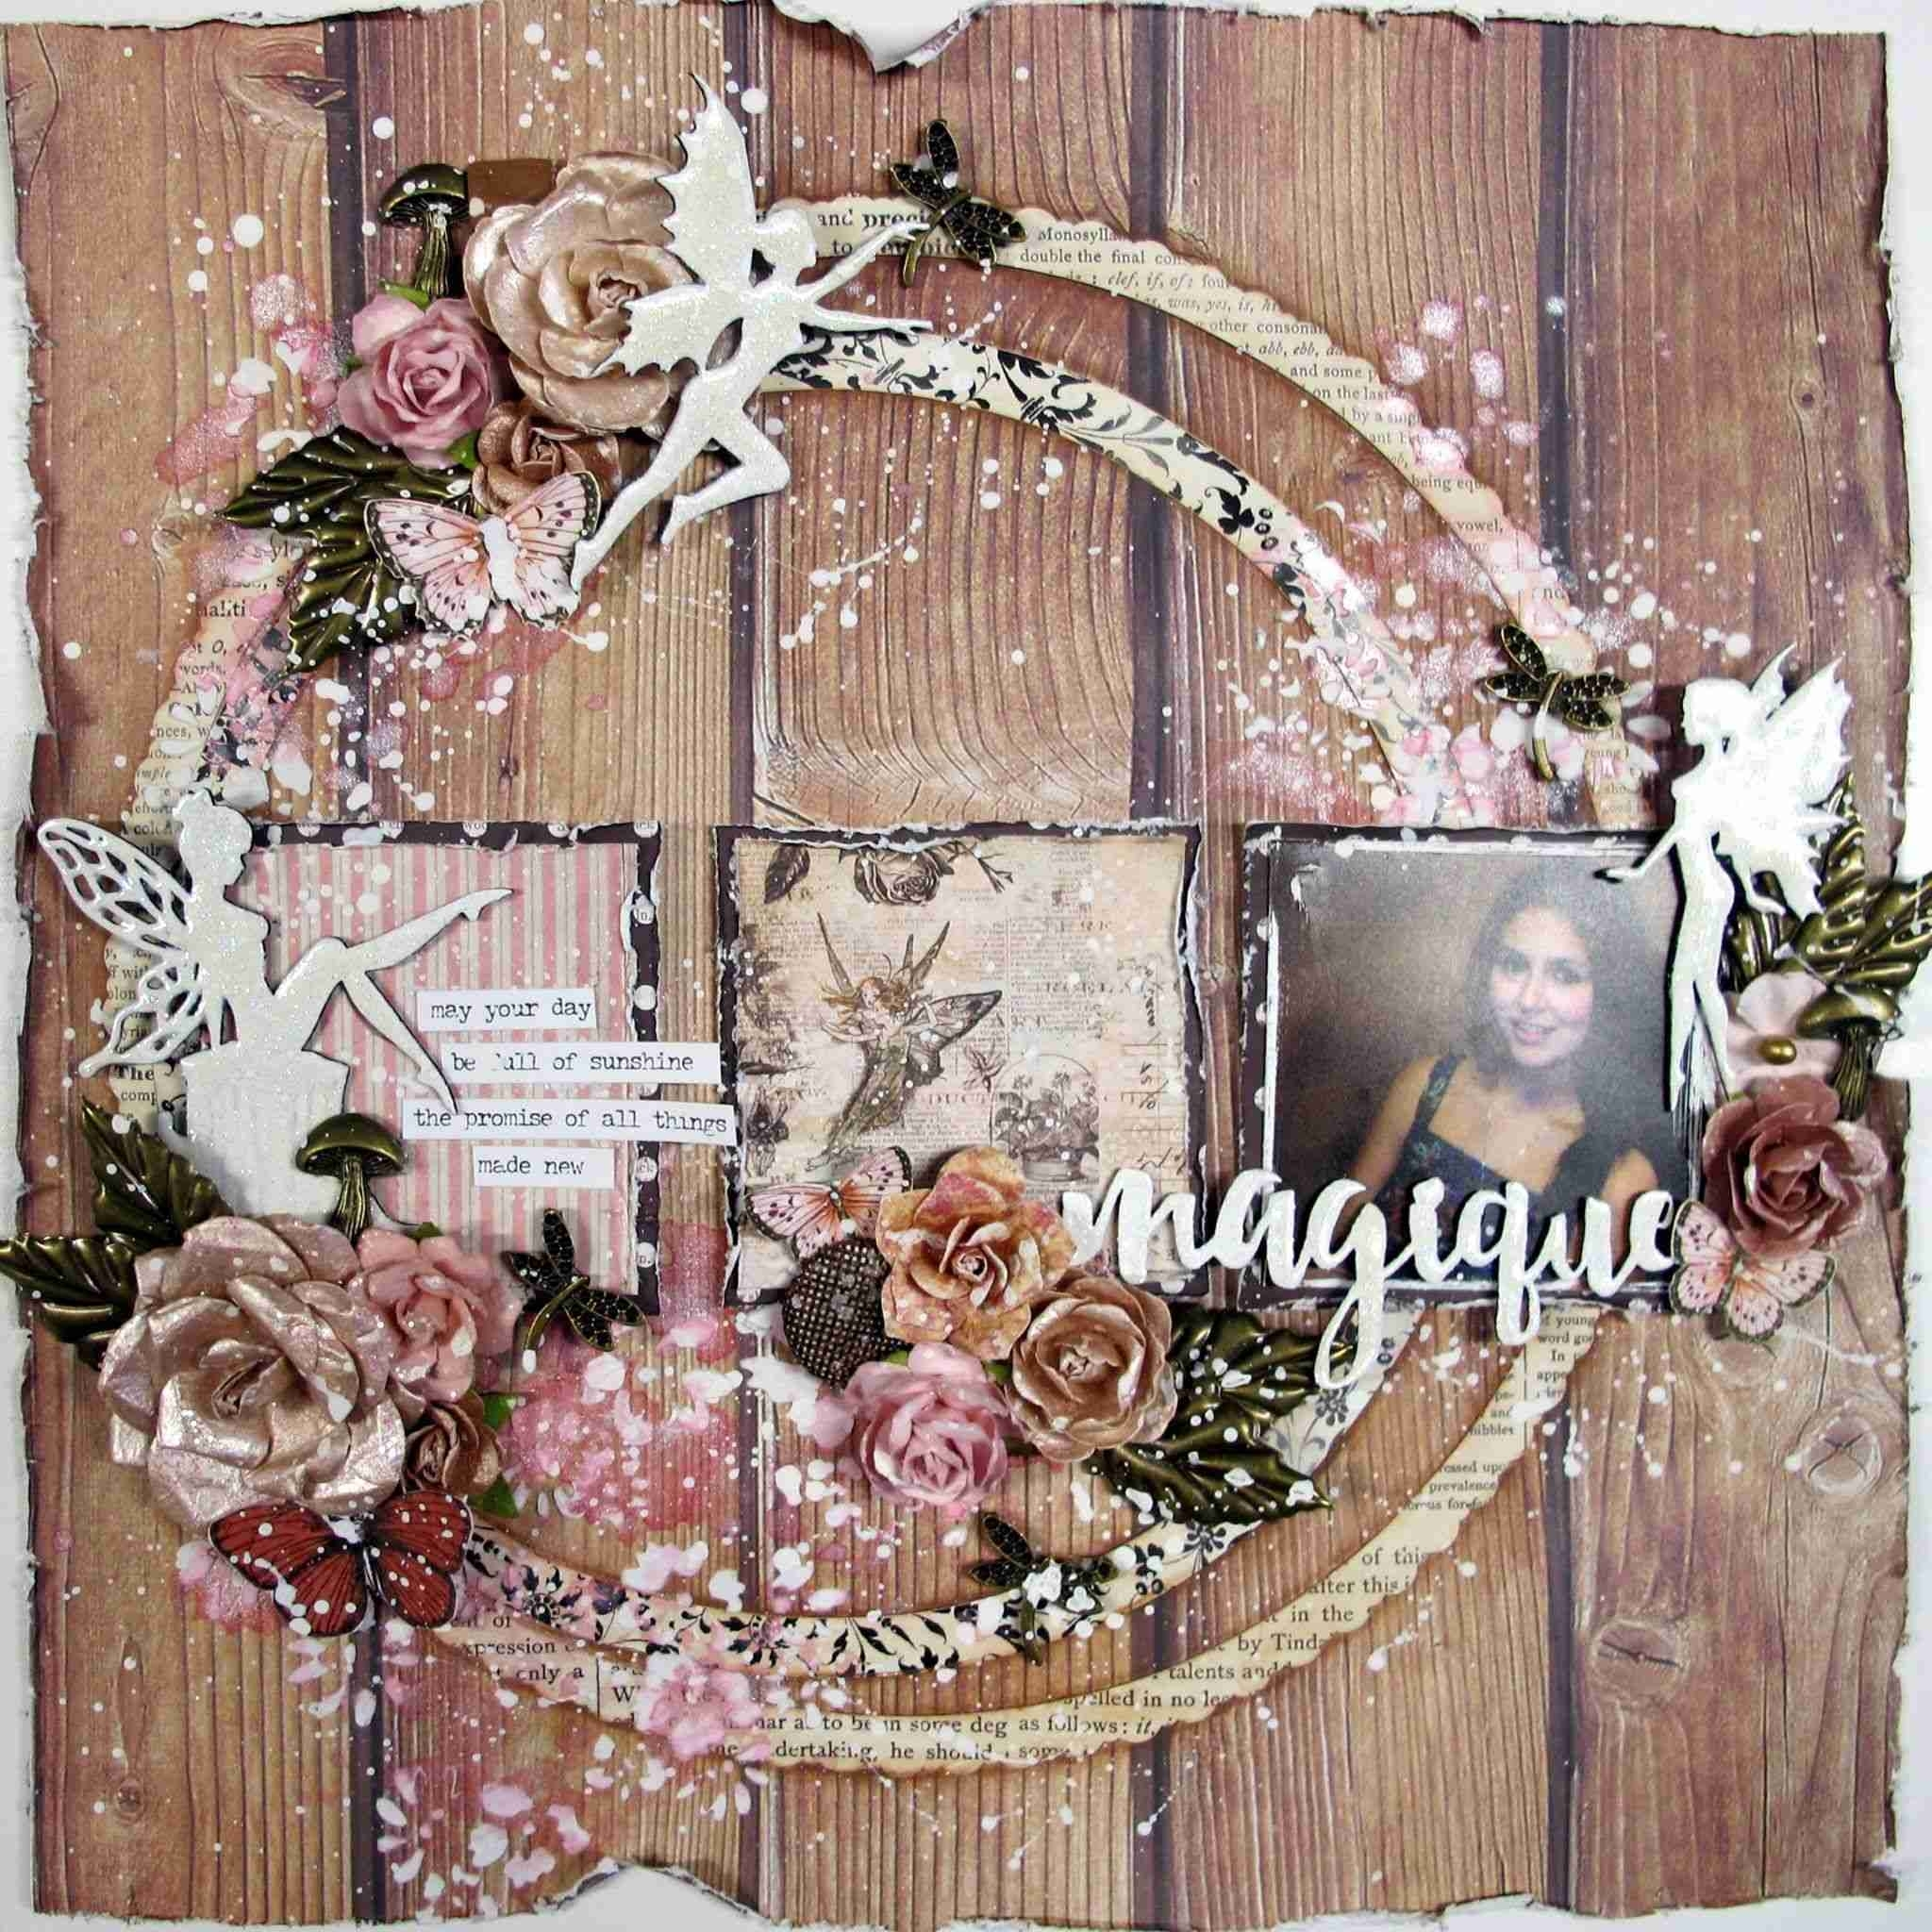 Shabby Chic Decor, Bedroom Romantic Wall Art Wreath, Vintage - Super within Shabby Chic Wall Art (Image 9 of 20)